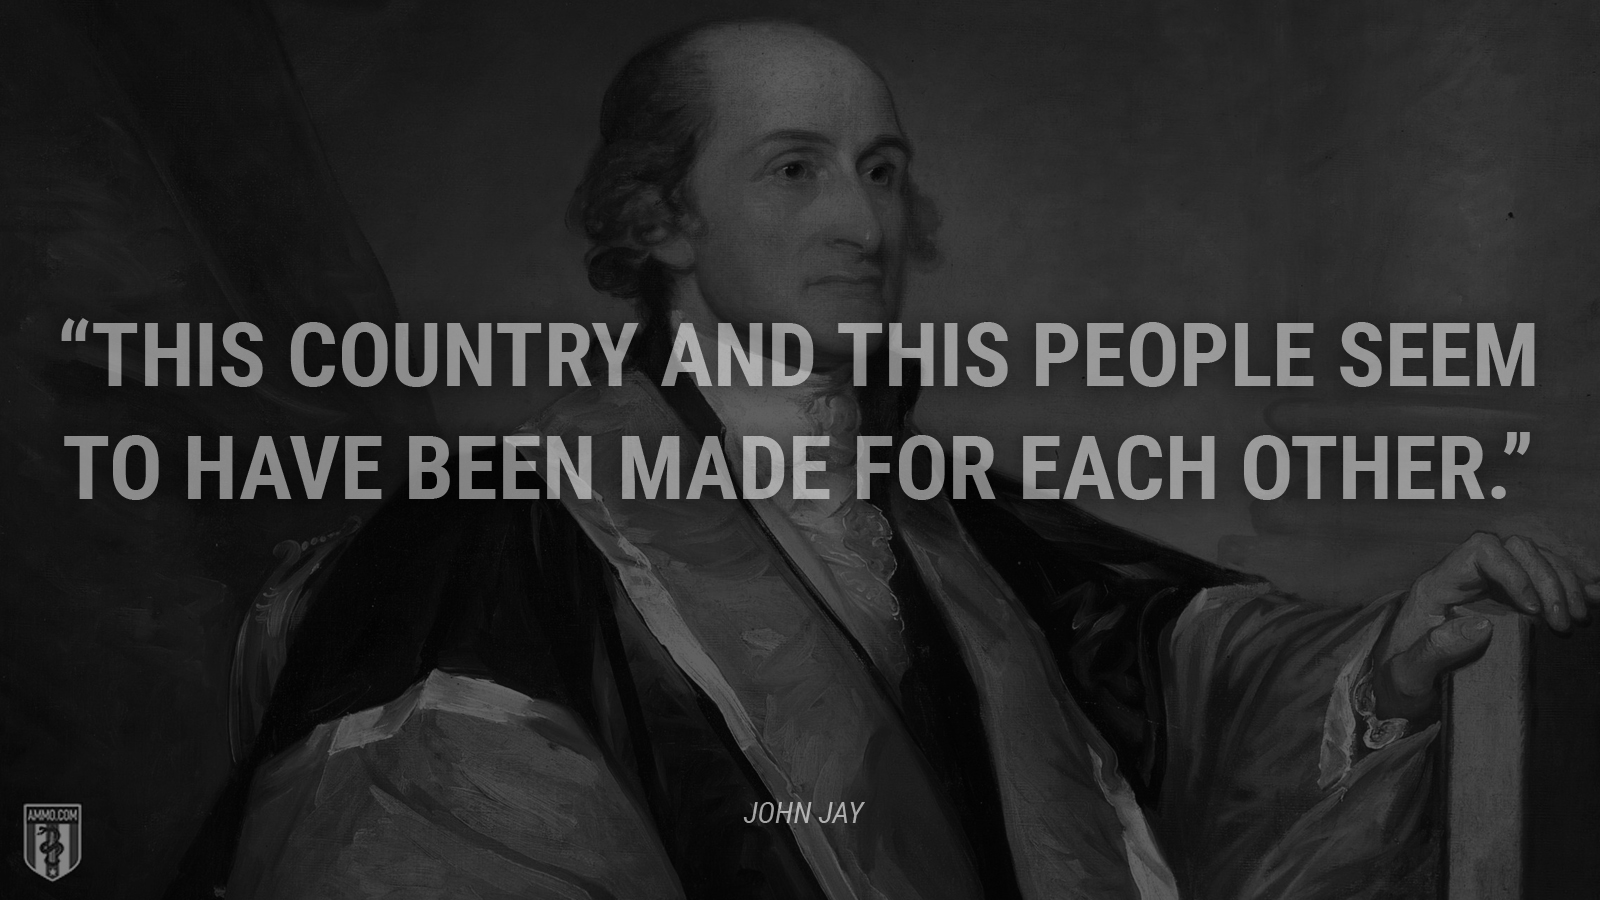 """This country and this people seem to have been made for each other."" - John Jay"